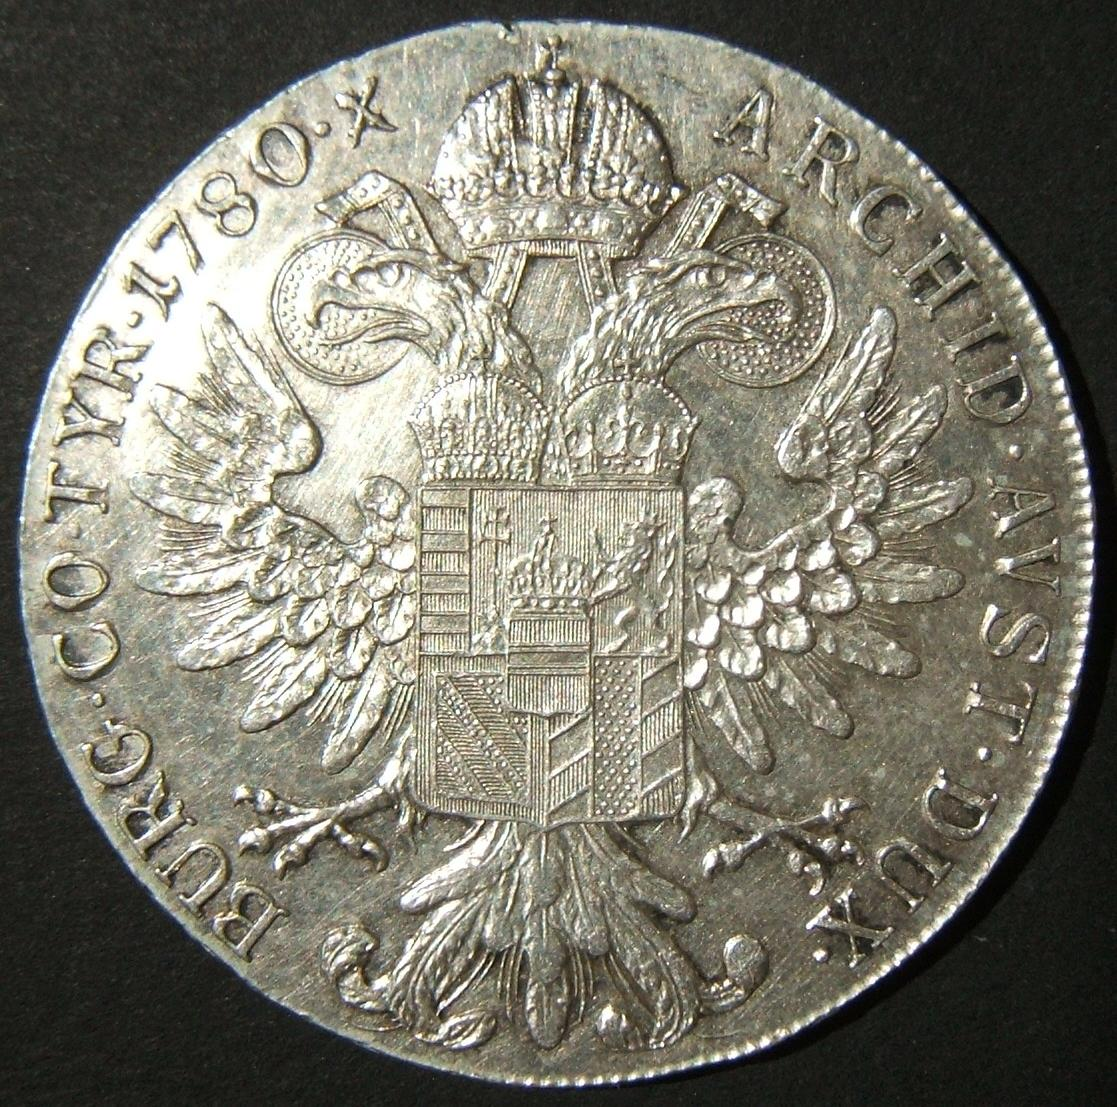 Austria: Maria Theresa silver thaler restrike variant, dated 1780 S.F.; size: 40.75mm; weight: 27.85g. With milled rim frame. Lettering c. 2.25mm high. With 2 dots between